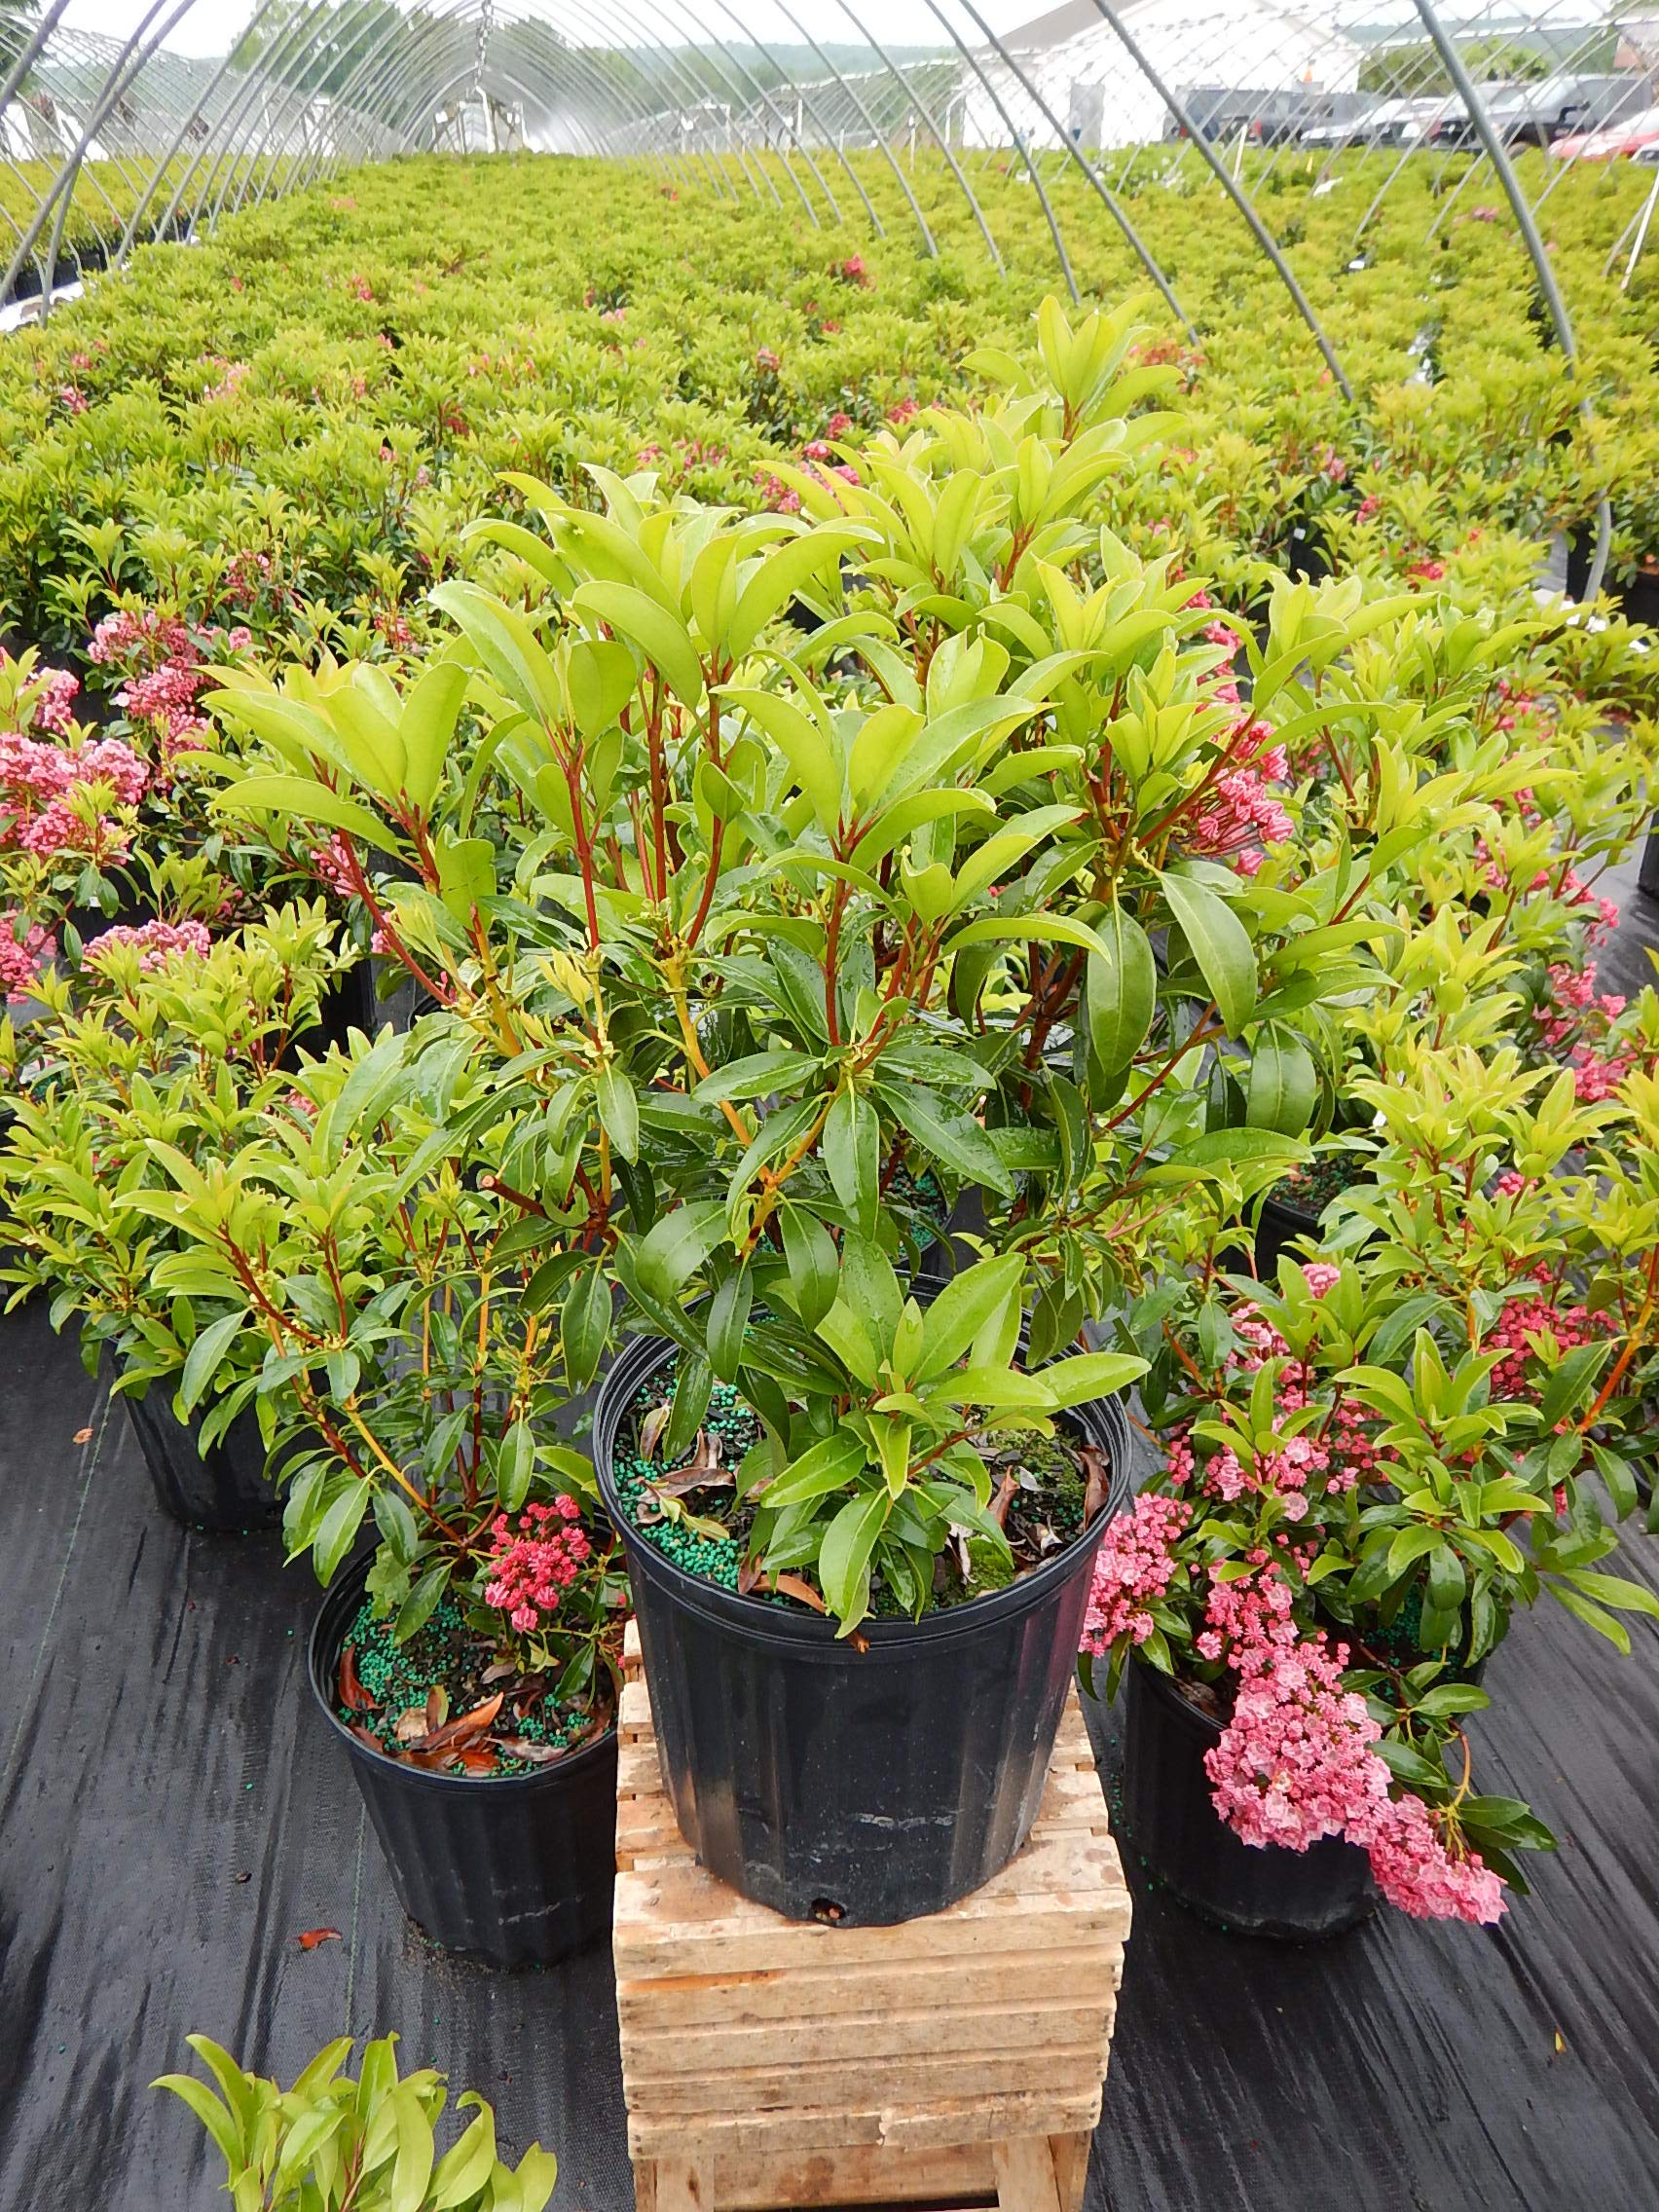 Kalmia lat. 'Sarah' (Mountain Laurel) Evergreen, pinkish-red flowers, #3 - Size Container by Green Promise Farms (Image #5)